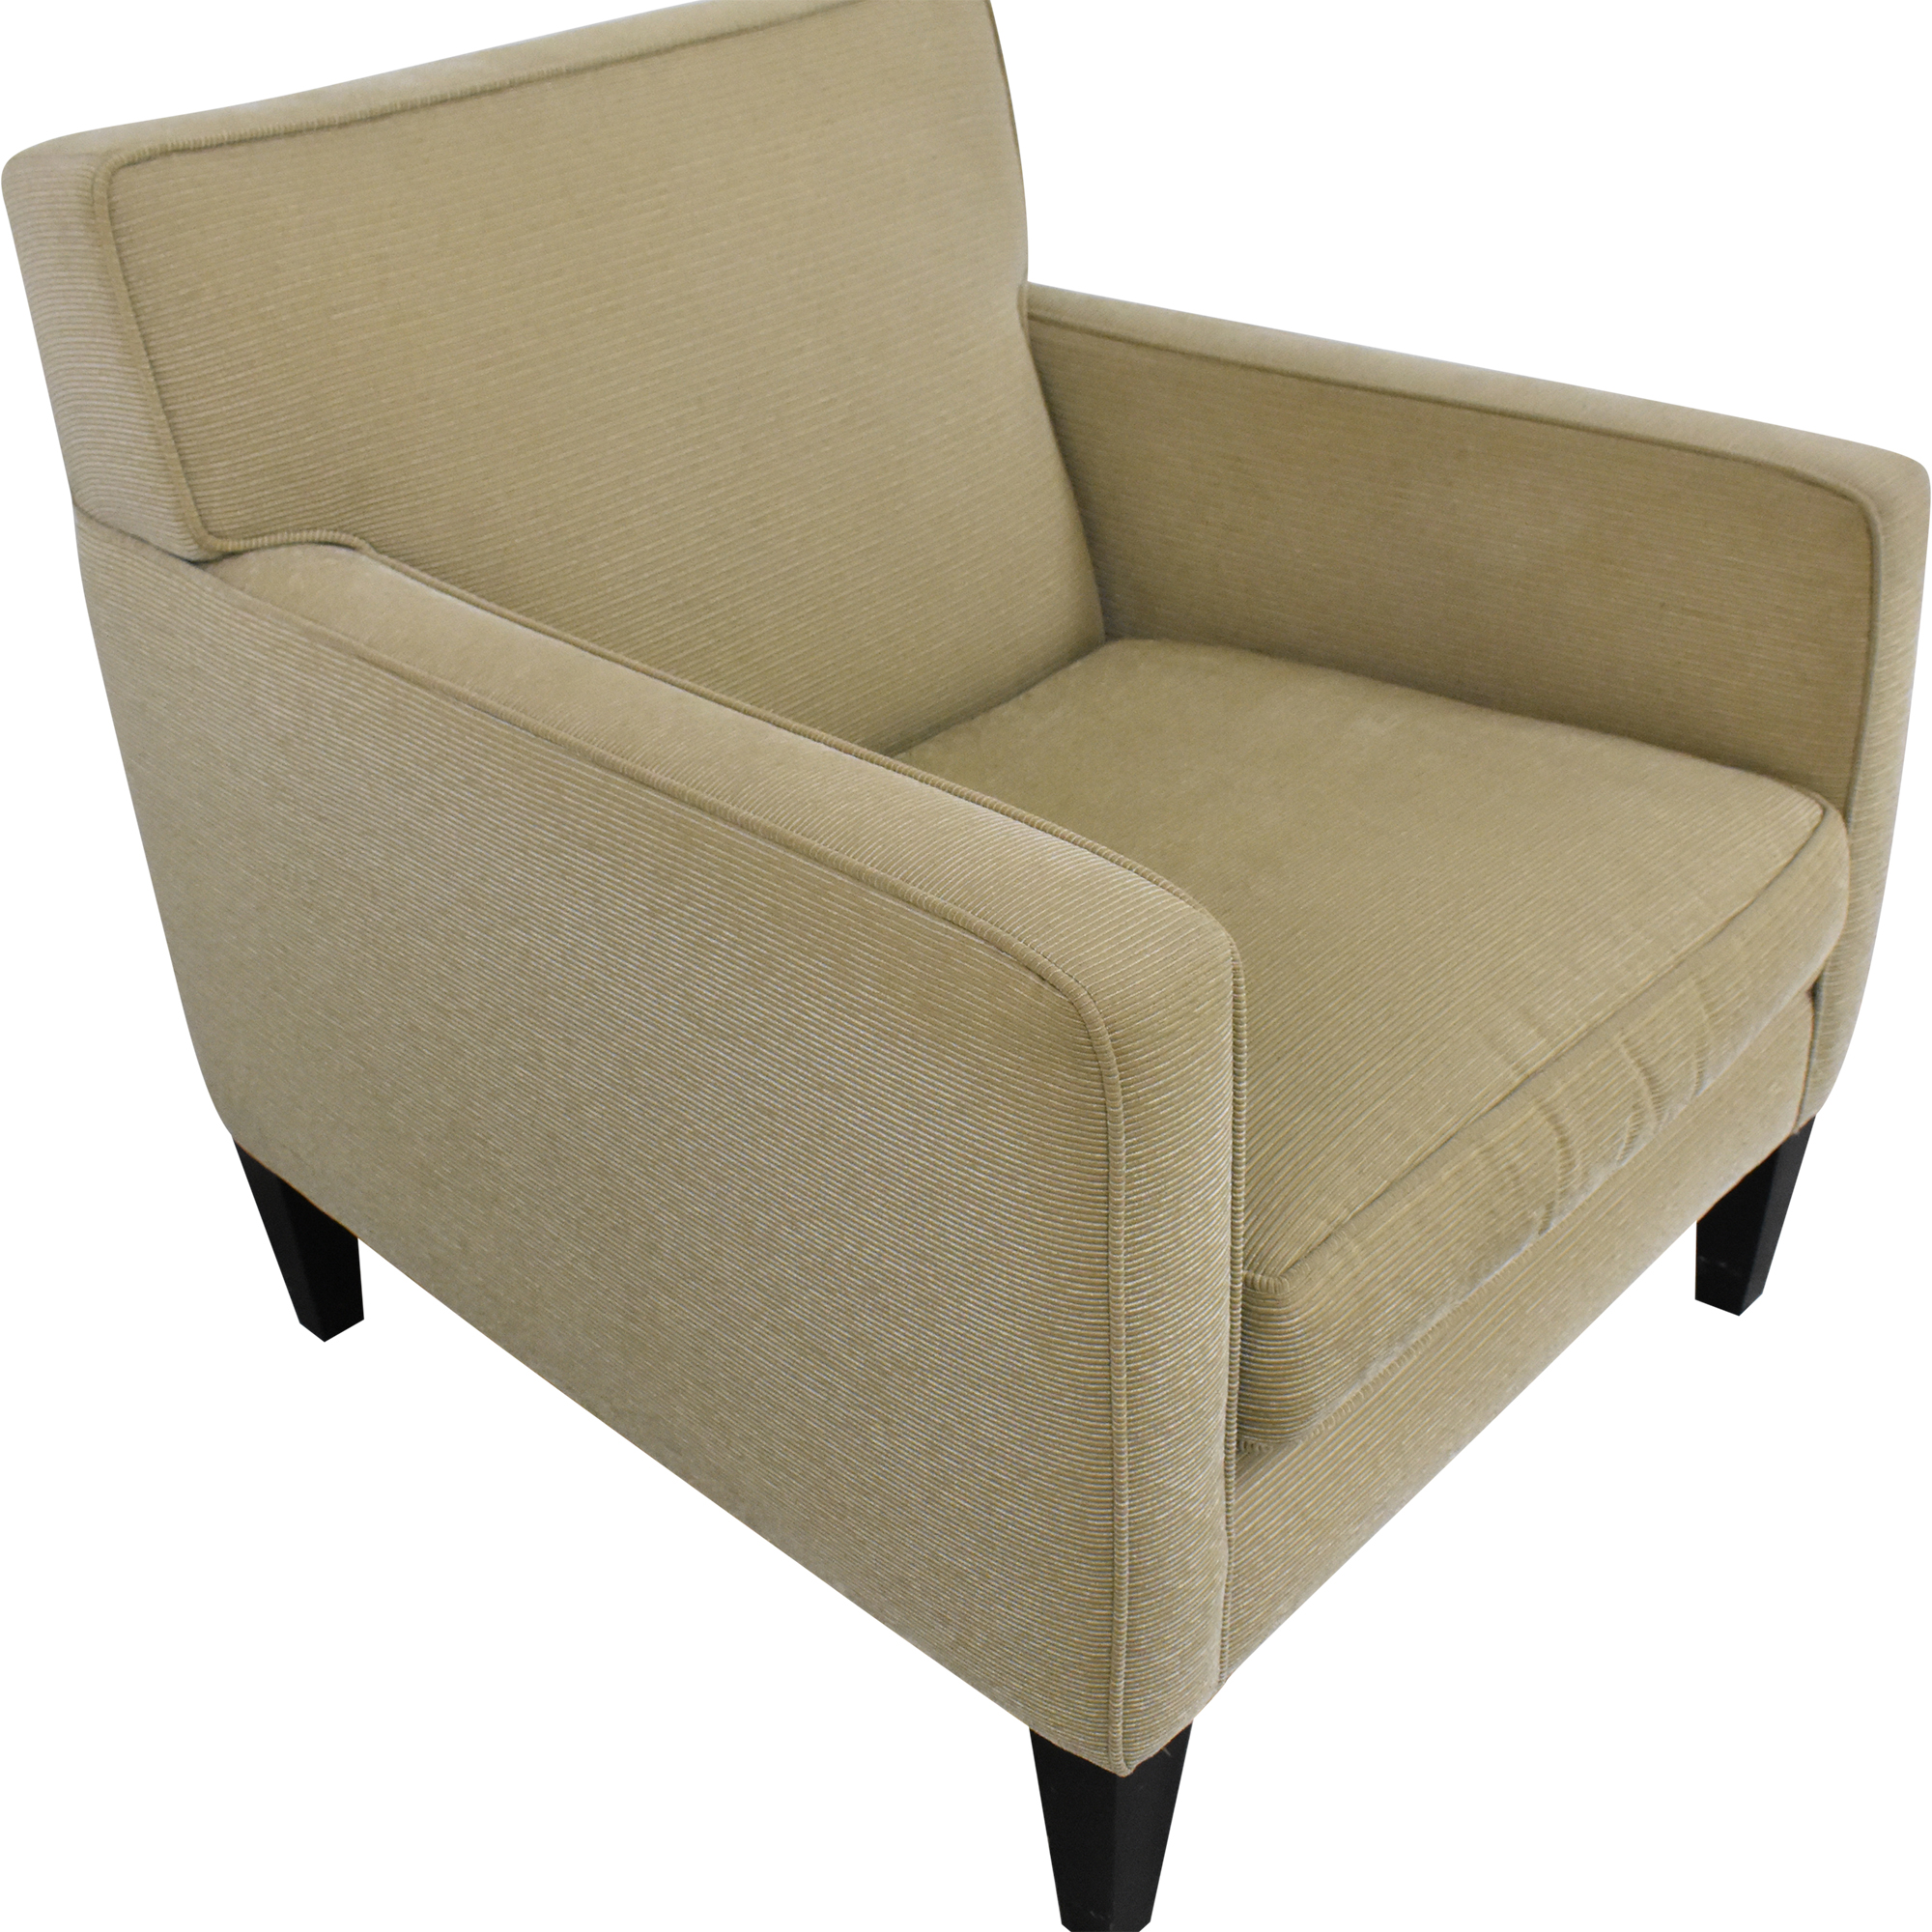 Crate & Barrel Crate & Barrel Tight Back Accent Chair Chairs